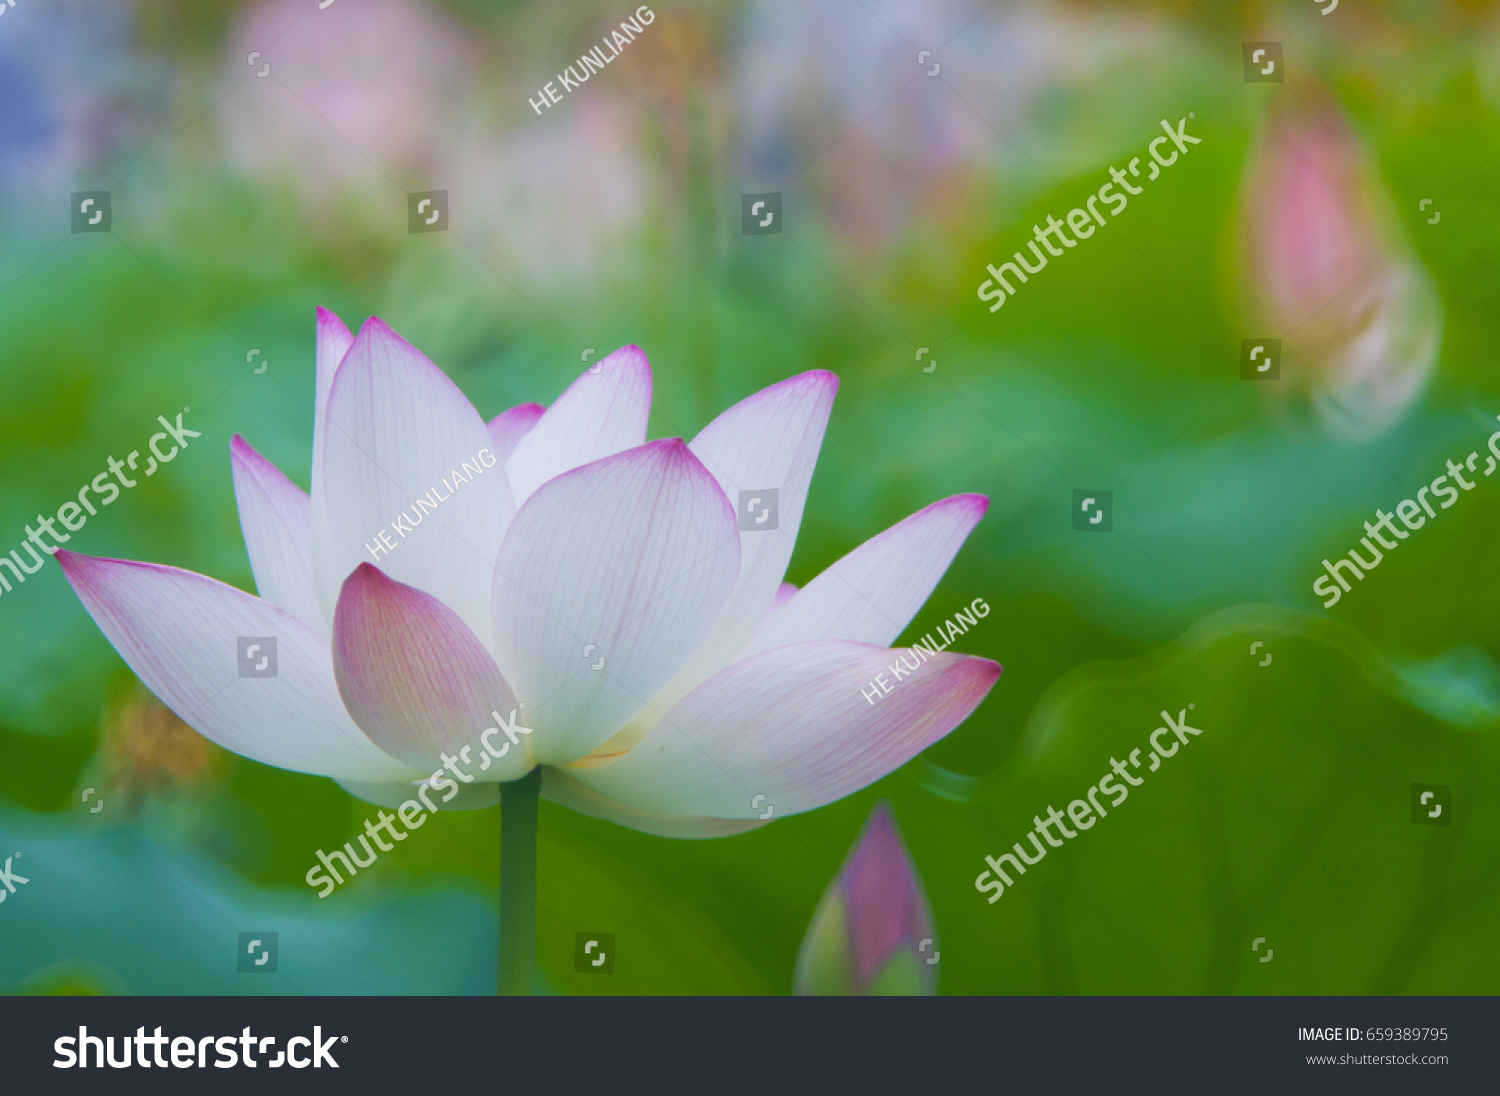 Lotus The Lotus In The Vast Sea I Am Excited To Record Every Flower